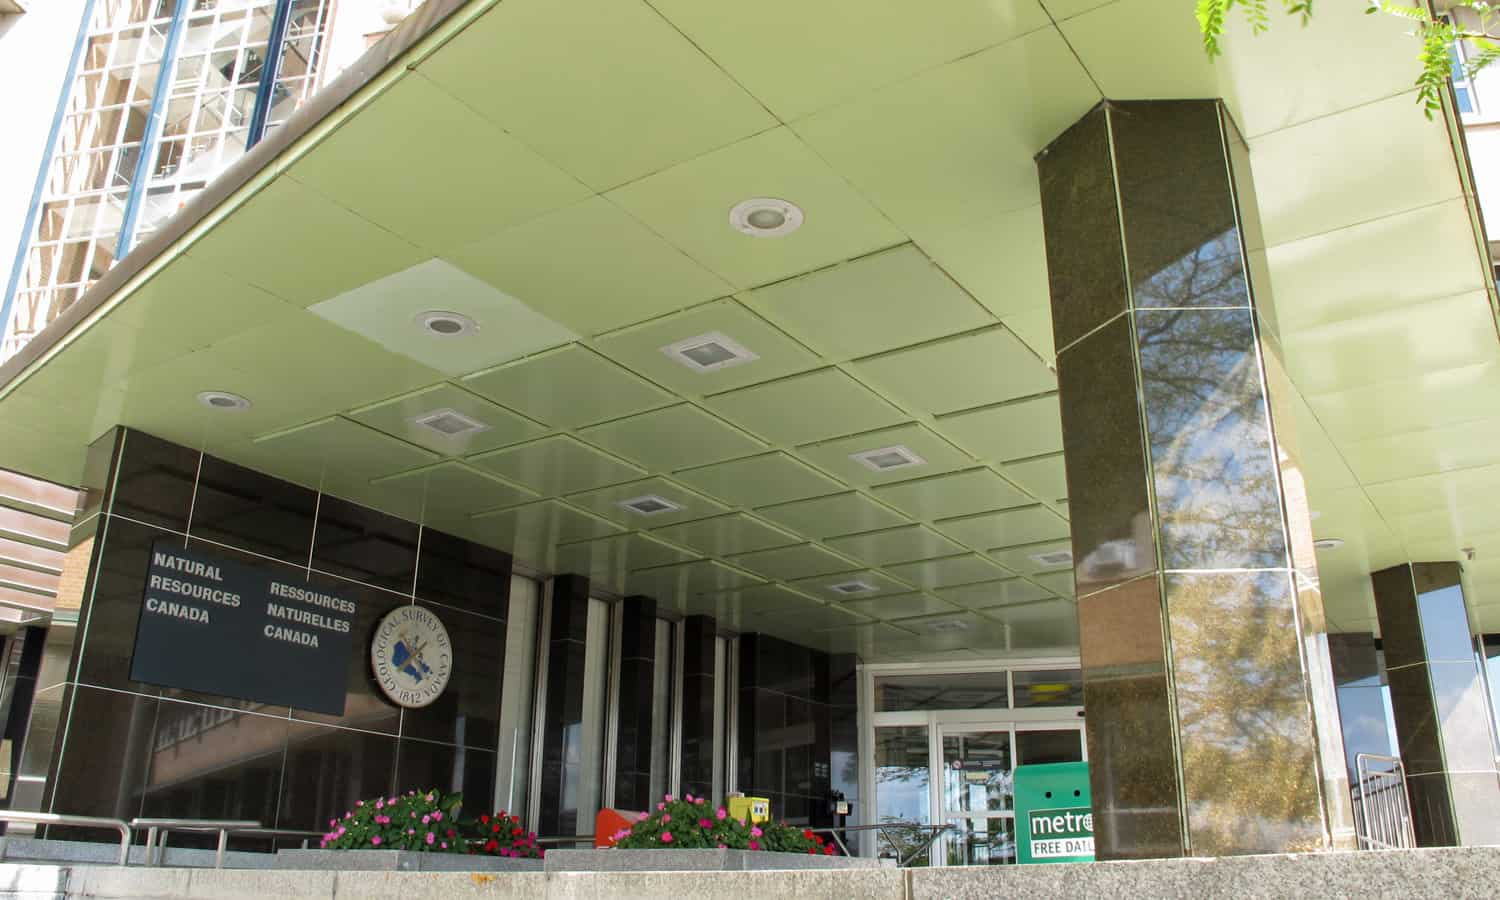 Detail of the entry canopy and main entrance located at the intersection between the two primary wings of the building